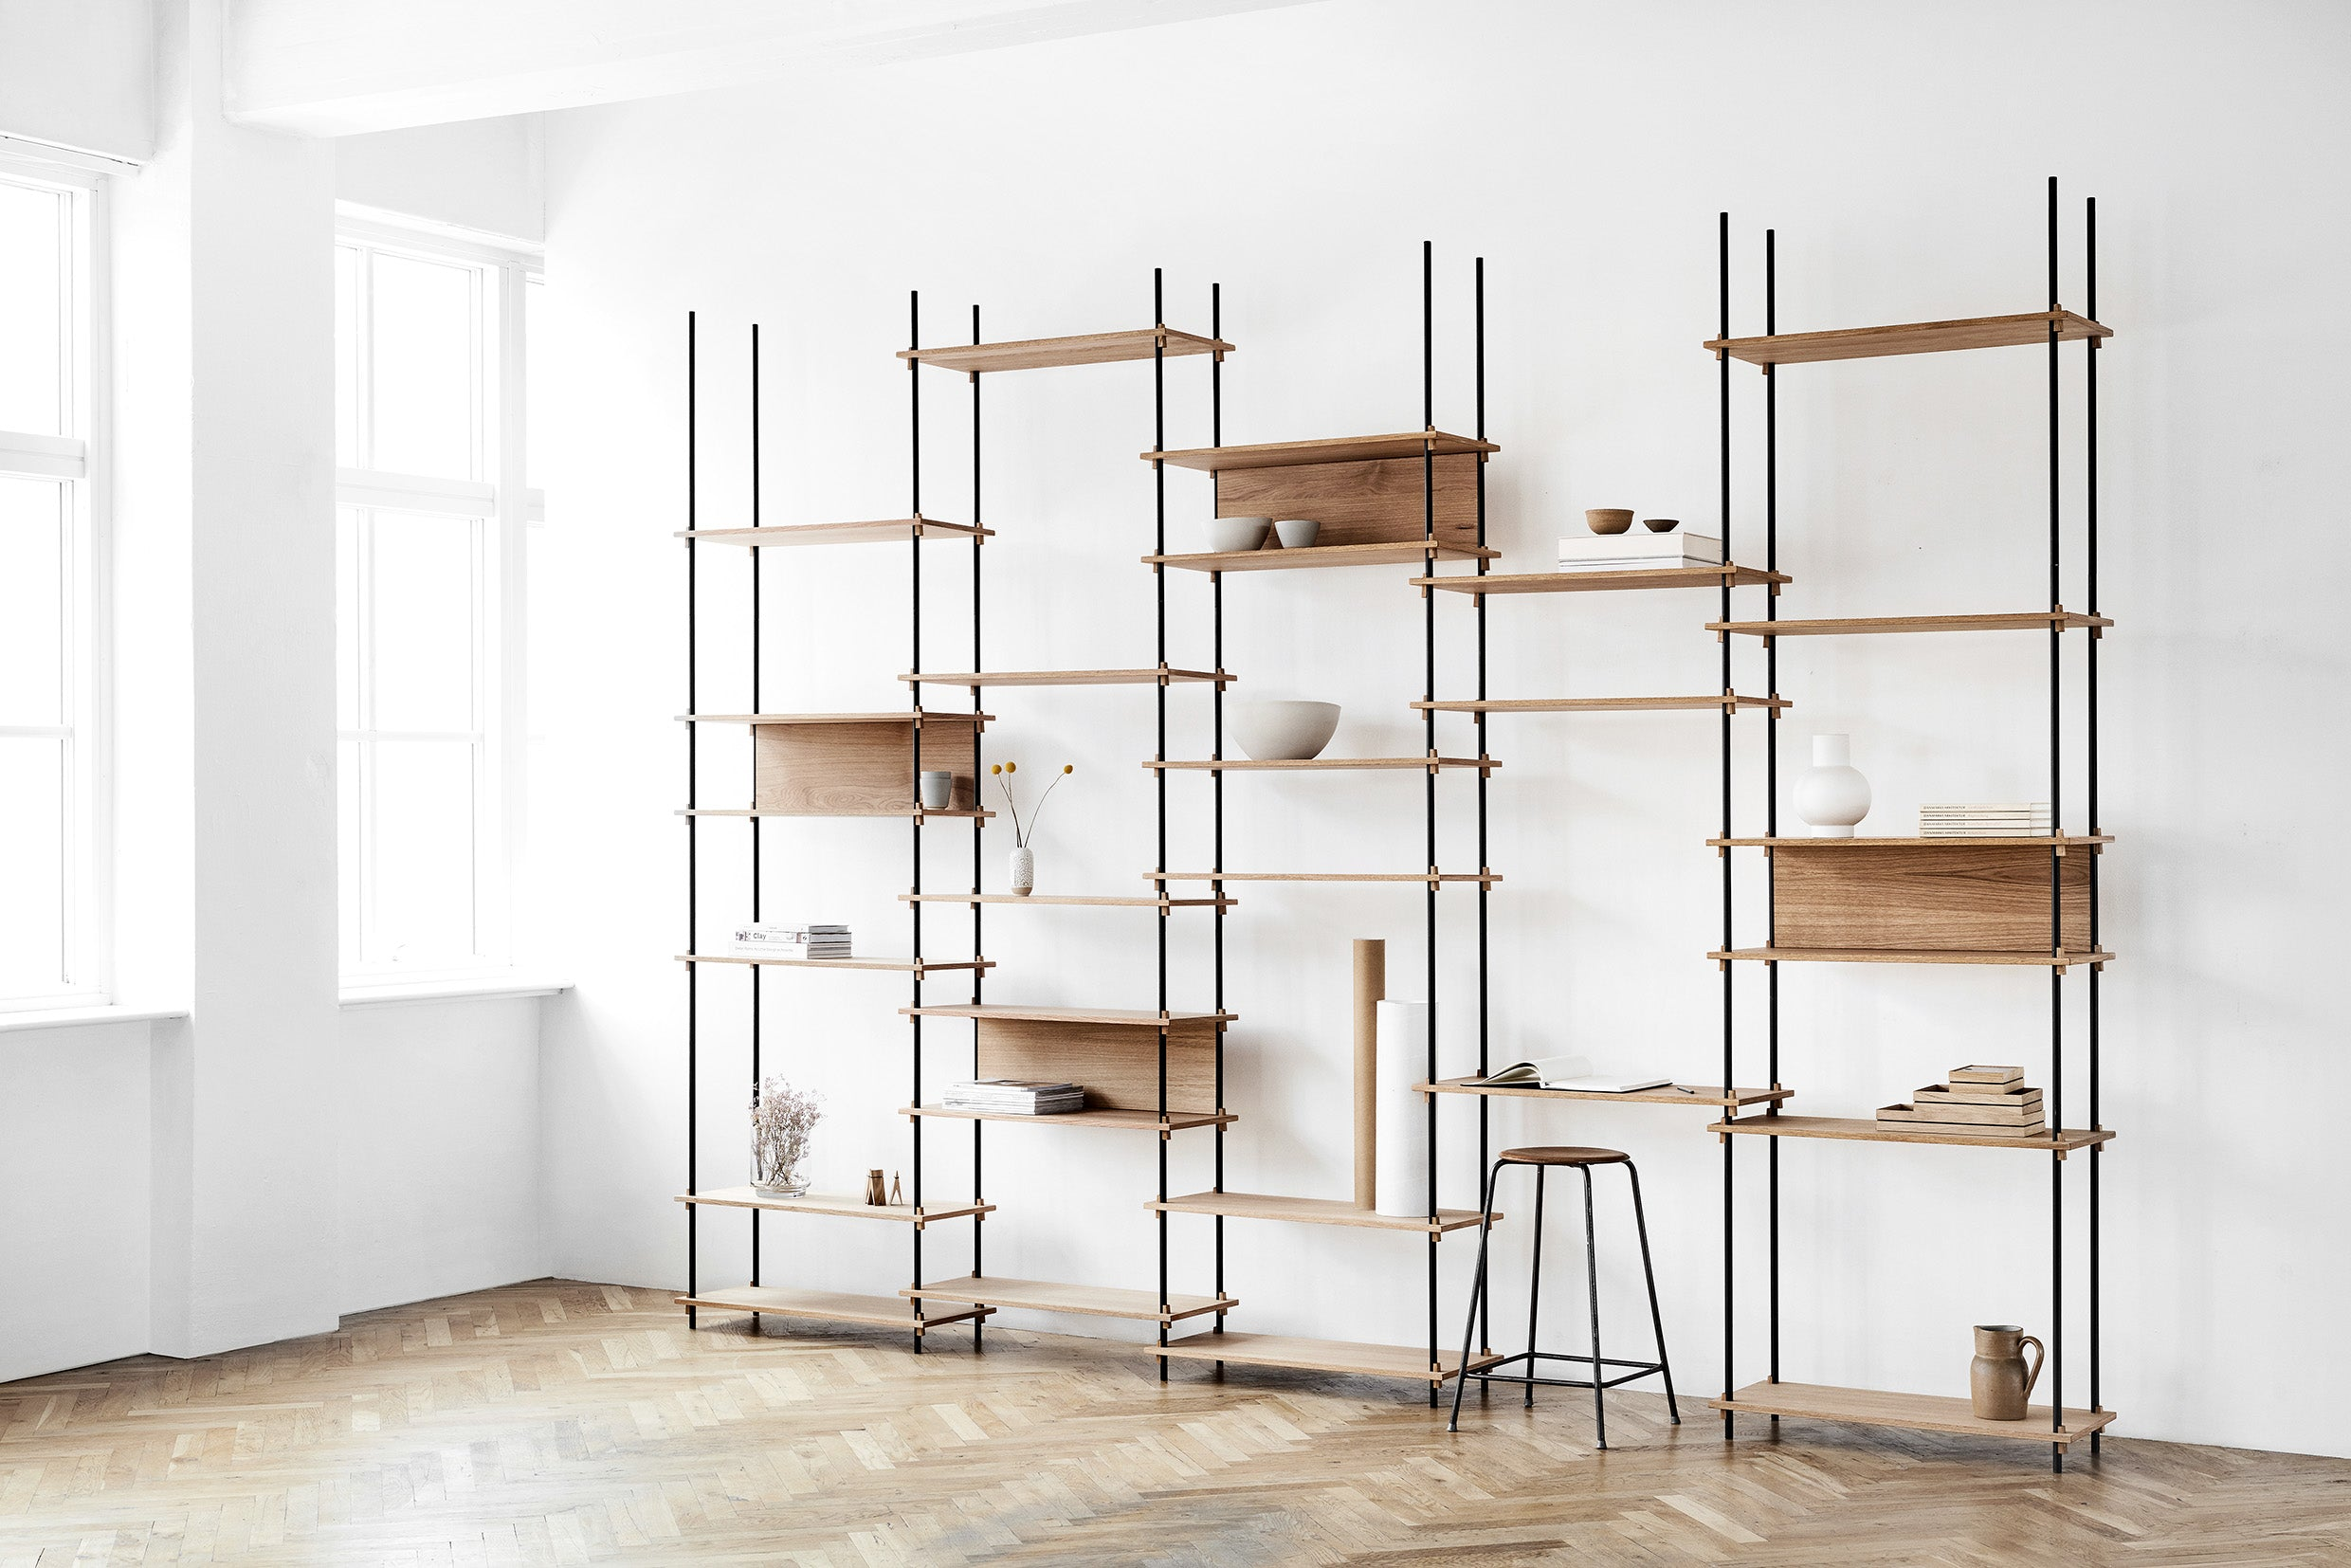 Shelving system - low double bay